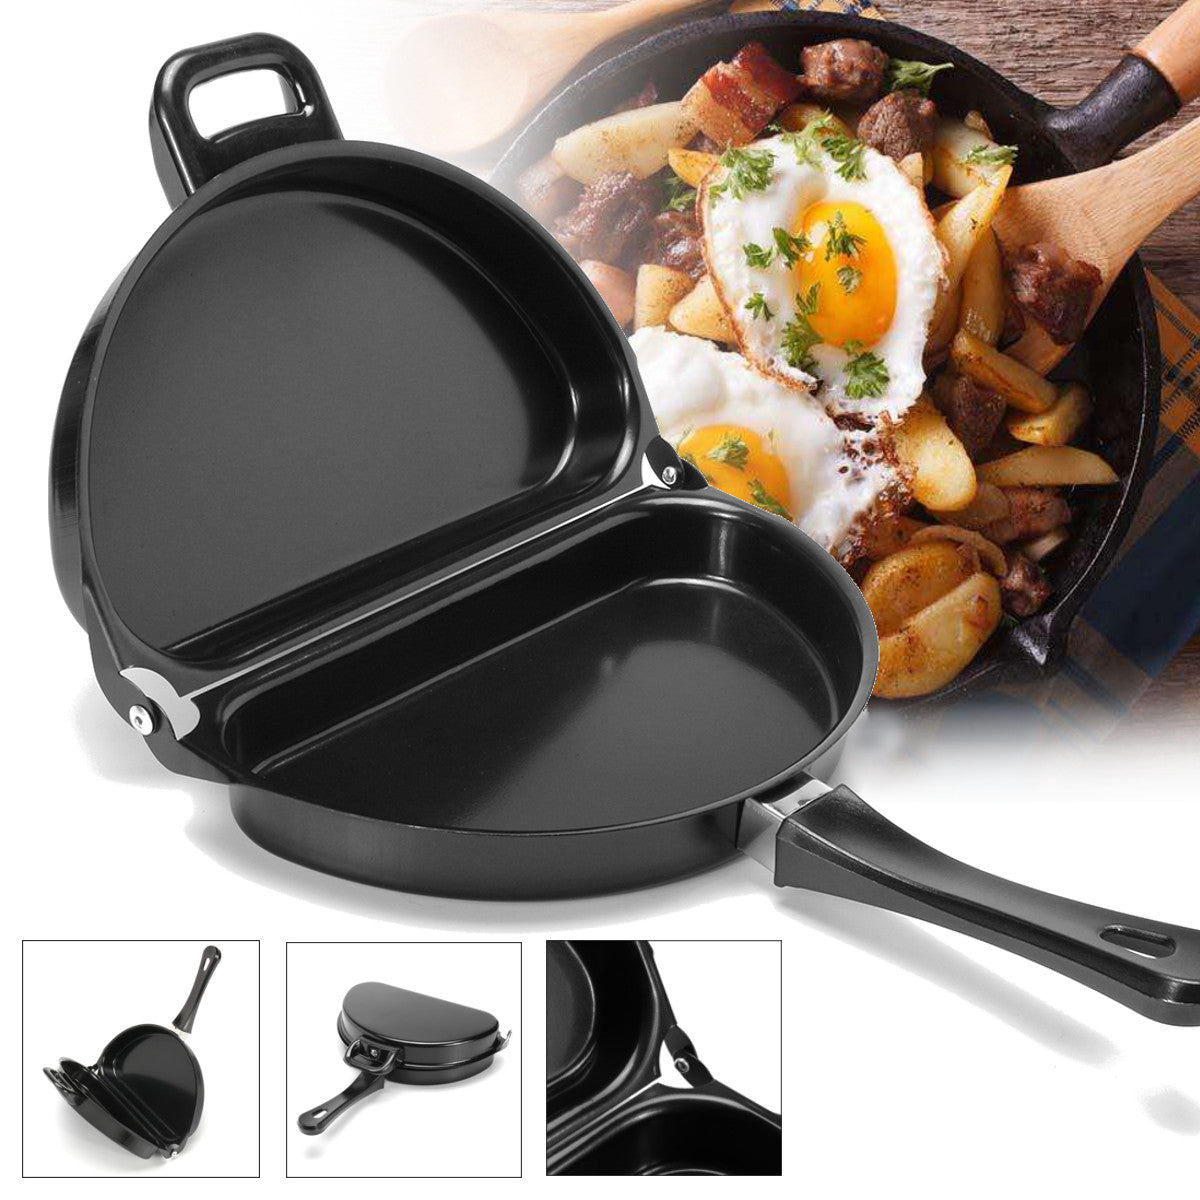 Double Sided Folding Omelette Pan - Non Stick